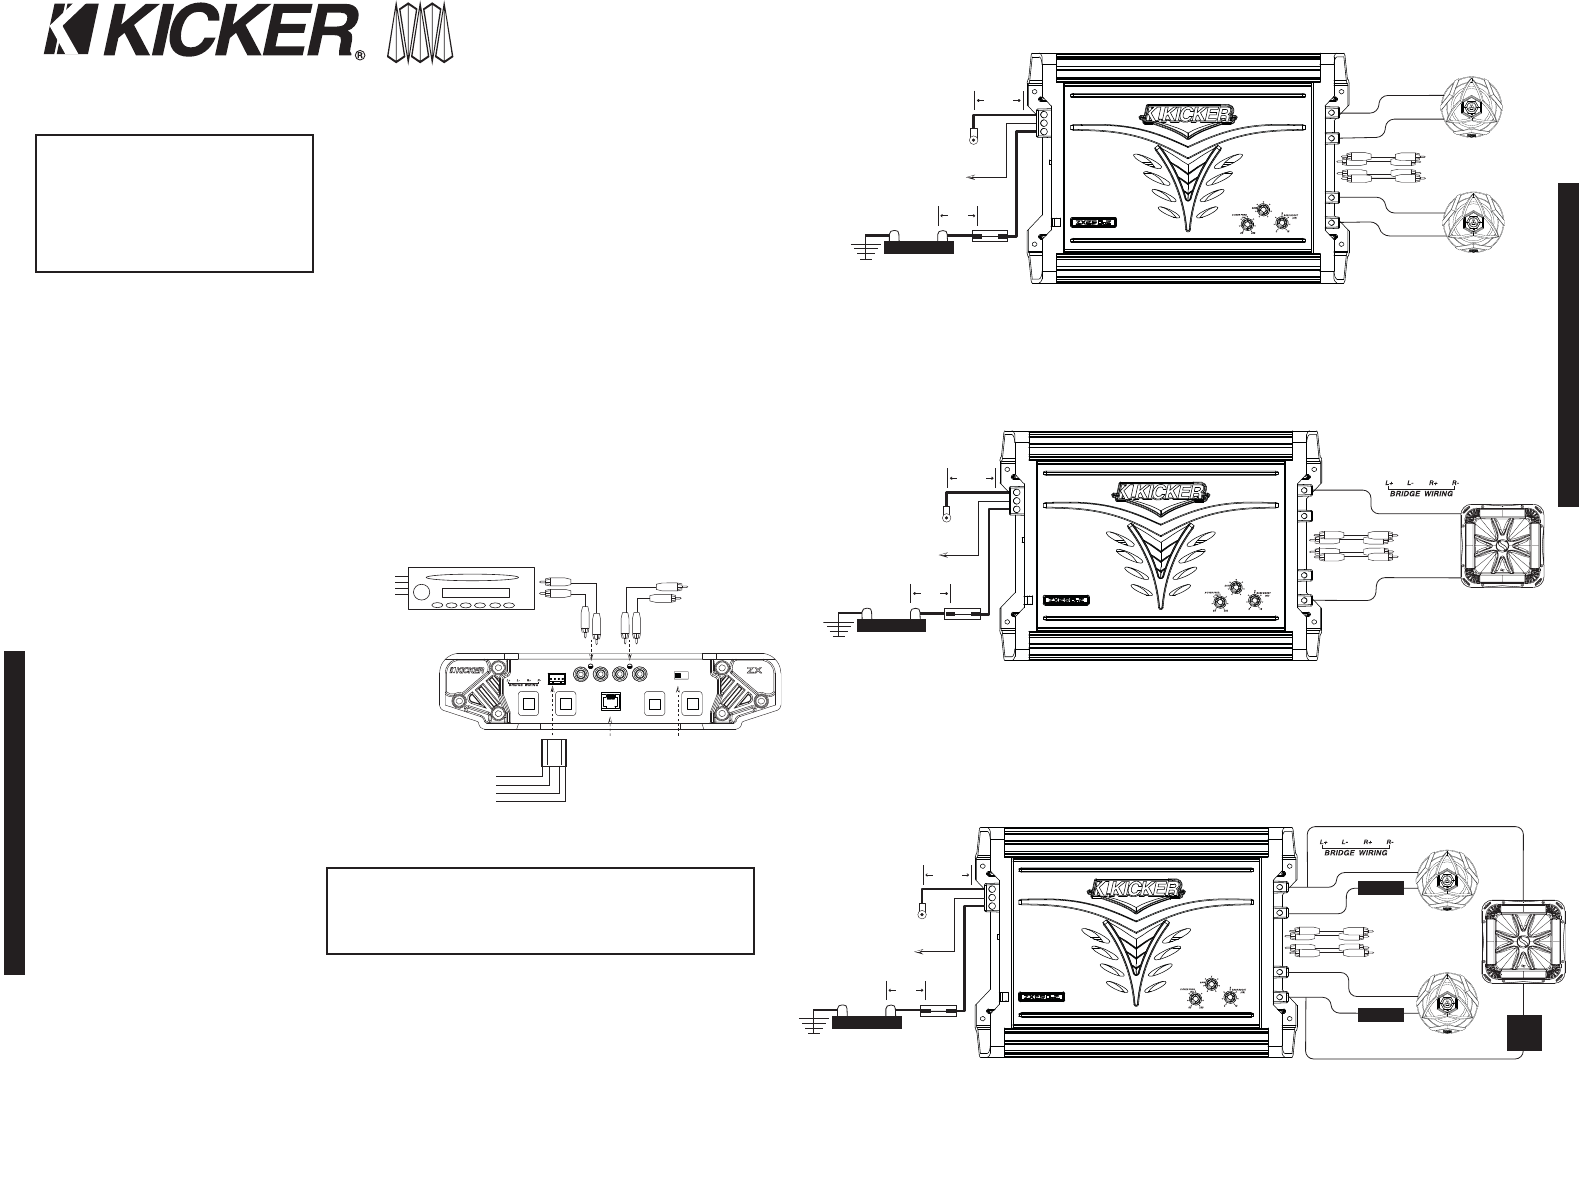 Kicker Subwoofer Wiring Diagrams L7 12 Diagram Cx300 1 29 Images Amp To 10 Inch